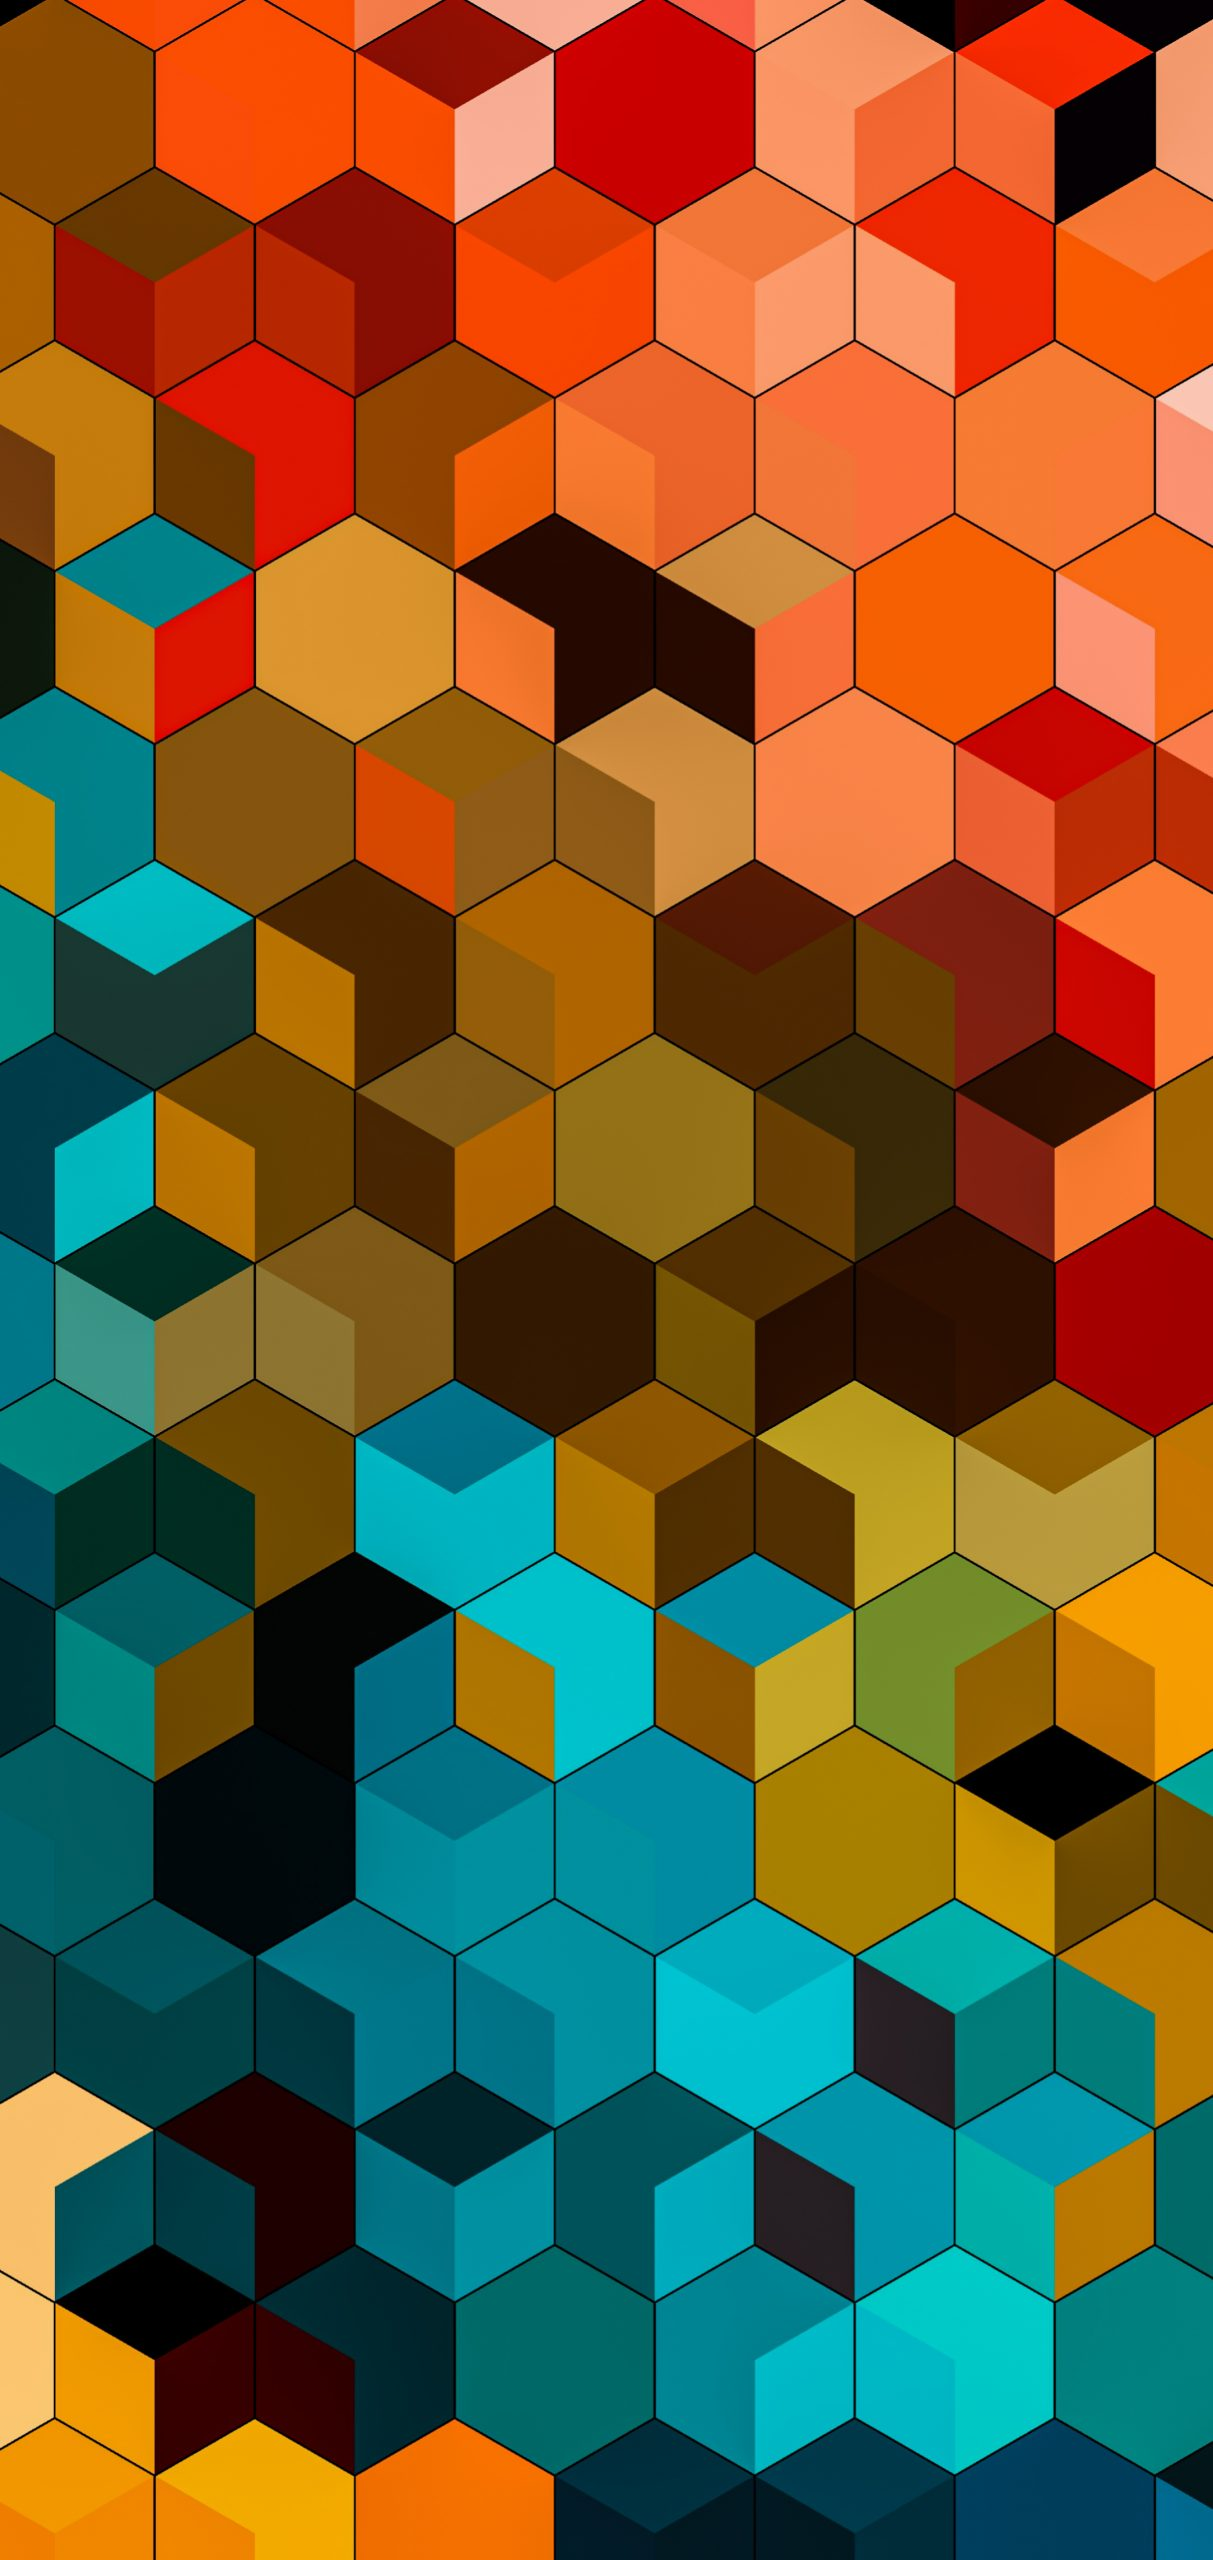 abstract geometry wallpaper wallsbyjfl idownloadblog cubes scaled